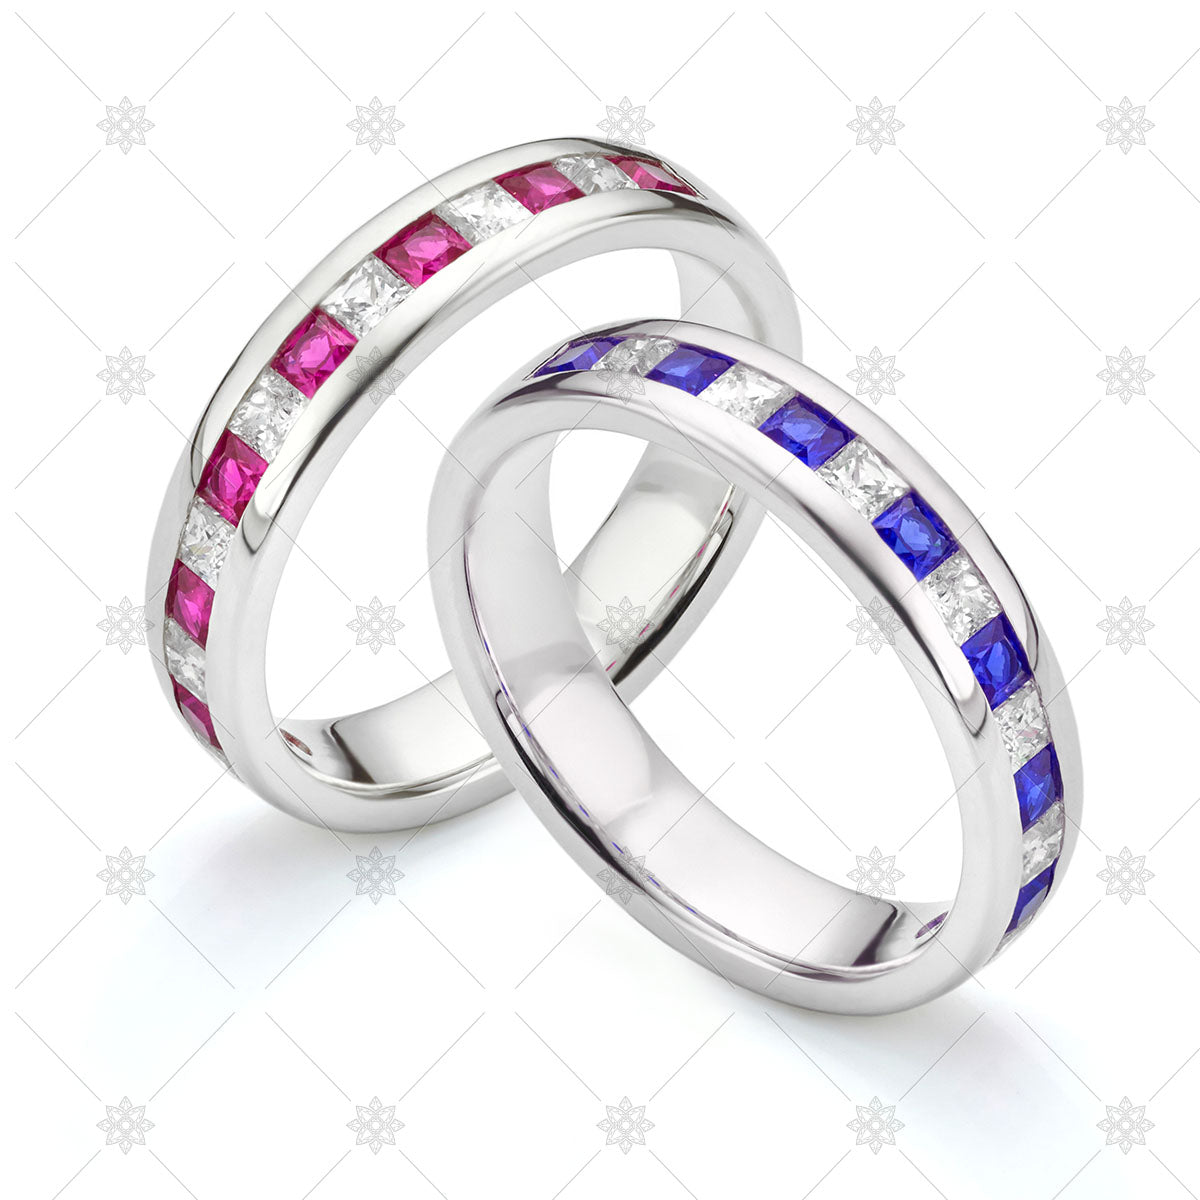 Blue and Pink Sapphire Wedding Rings stock image